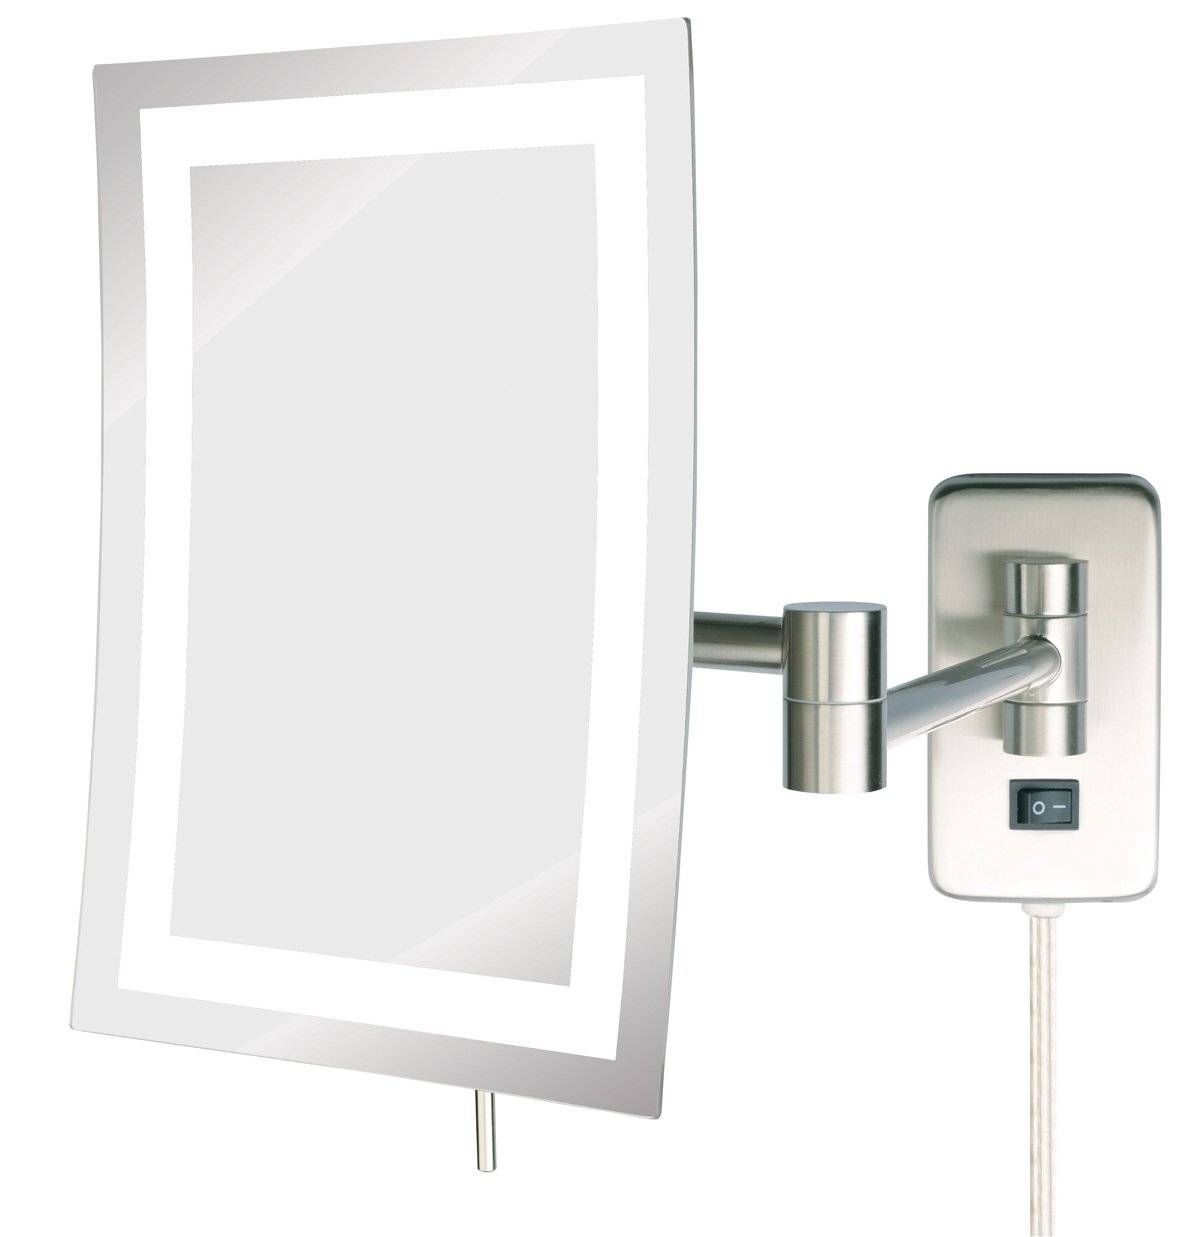 Home SCEVA Dimmable LED Lighted Mirrors Vanity Bathroom Frameless Backlit Wall Mirror Anti Fog Touch Button 36 x 24 in